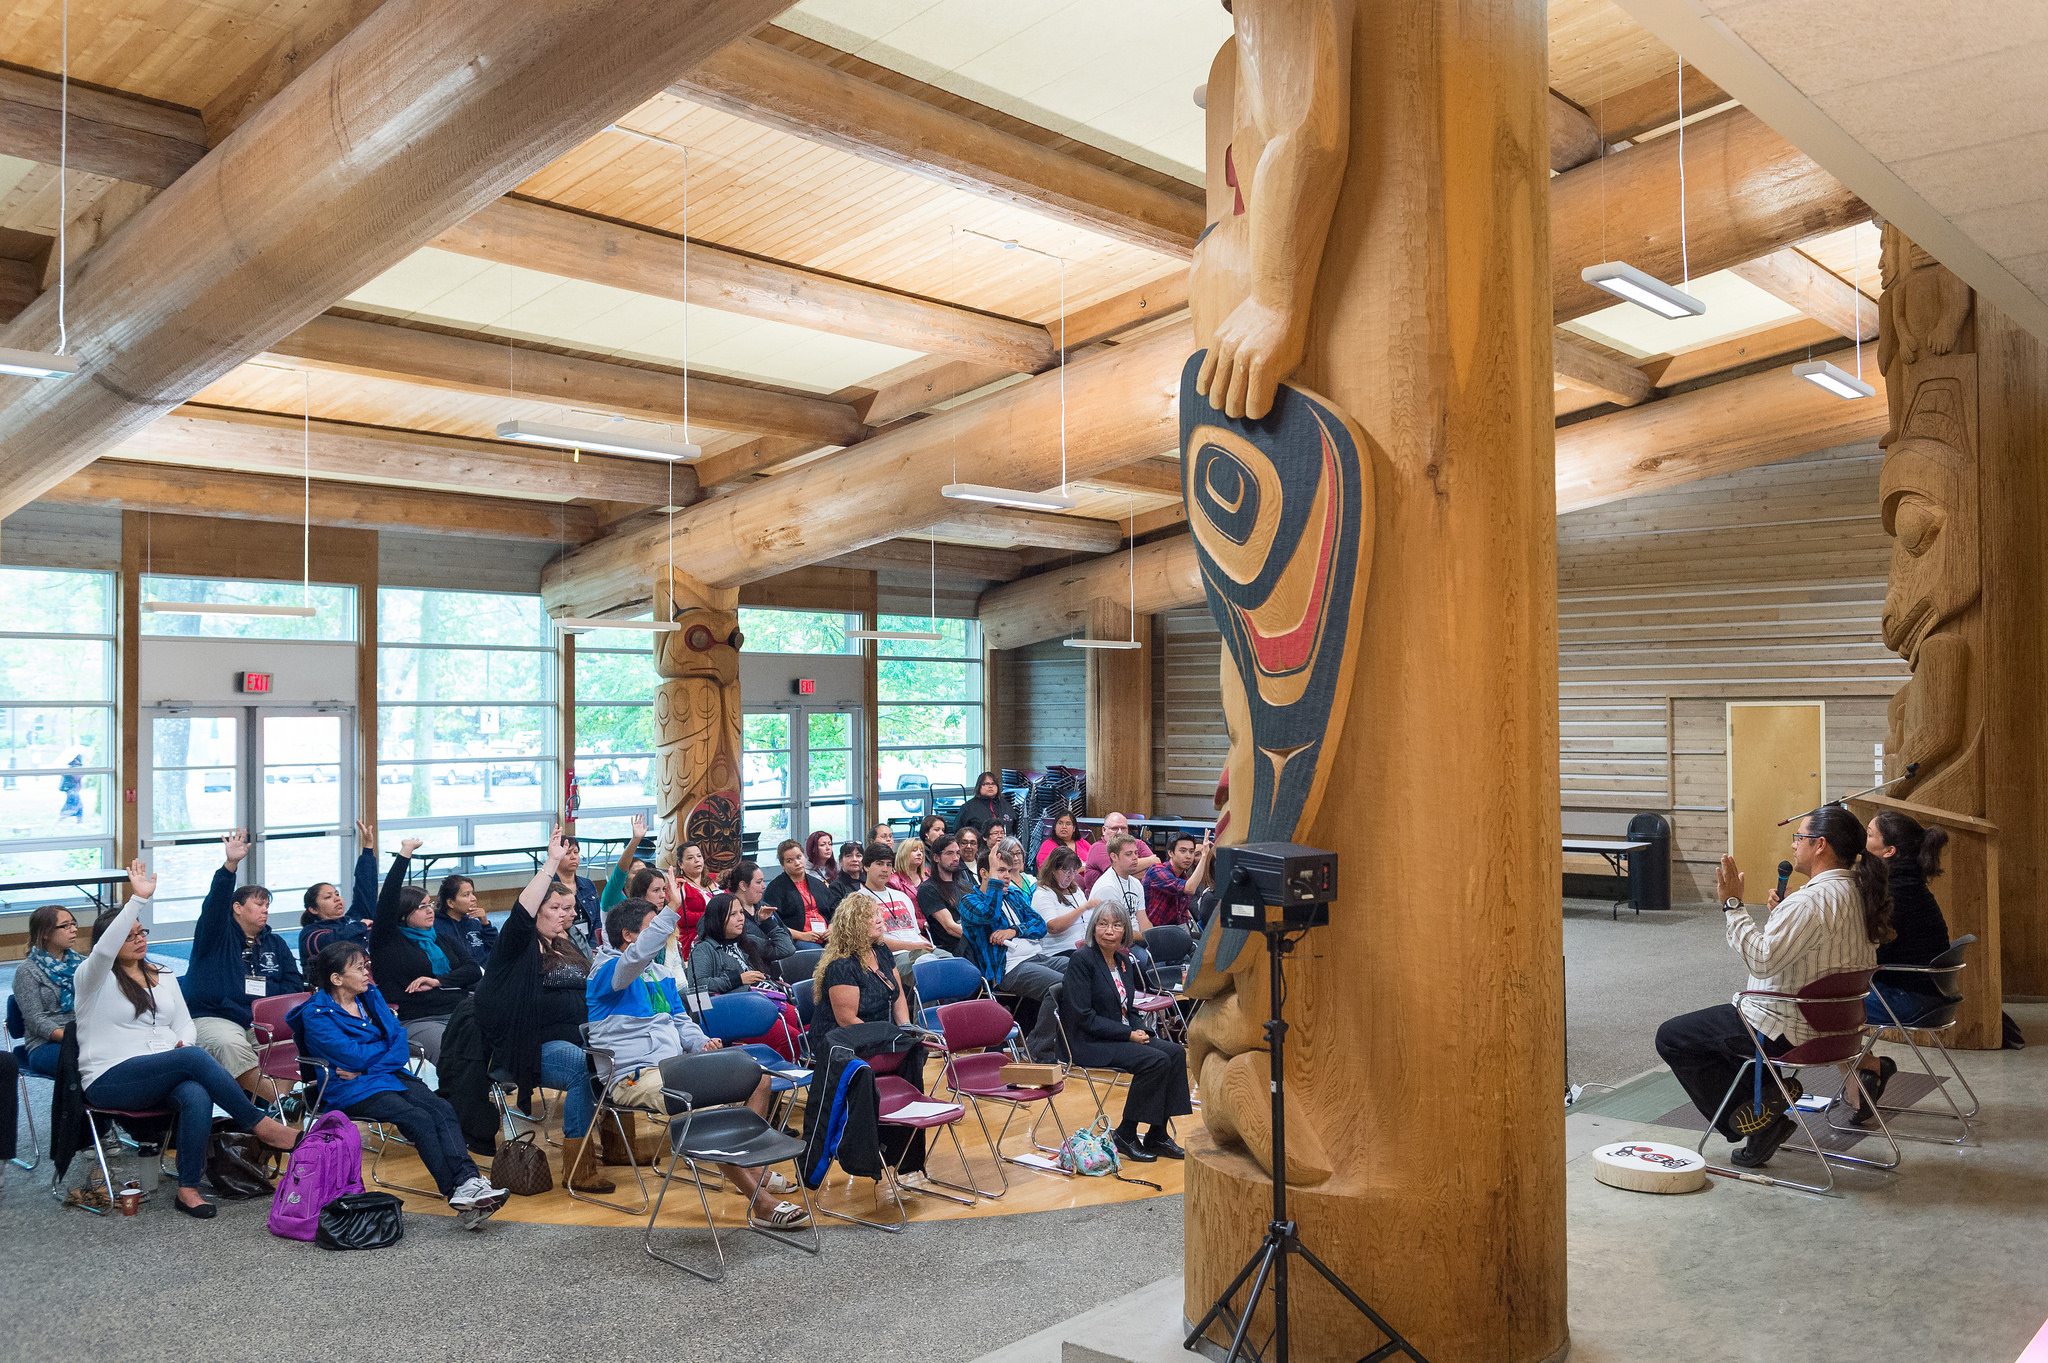 Credit: Don Erhardt, Native Indian Teacher Education Program, University of British Columbia